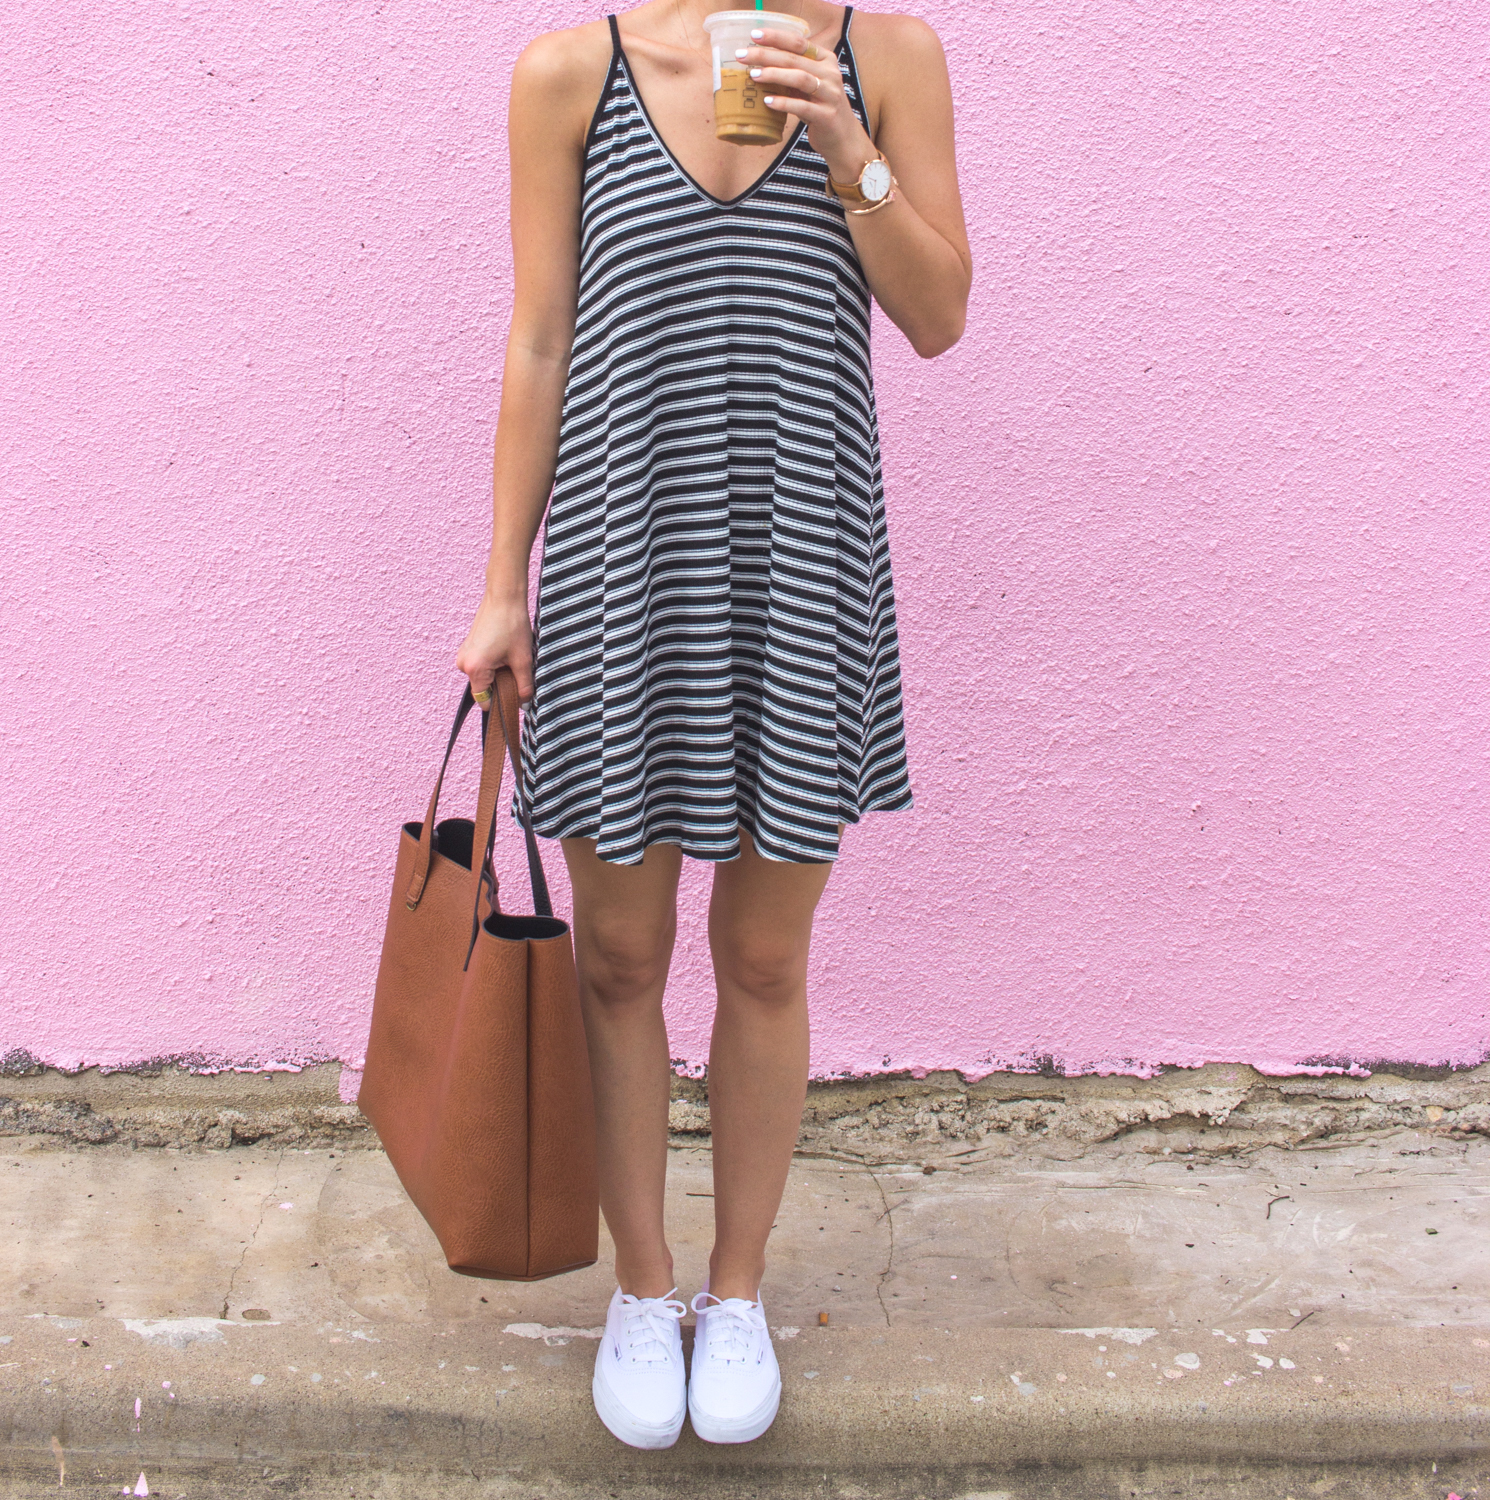 livvyland-blog-olivia-watson-austin-texas-fashion-blogger-pink-wall-coffee-run-summer-lace-up-back-striped-sun-dress-vans-sneakers-5